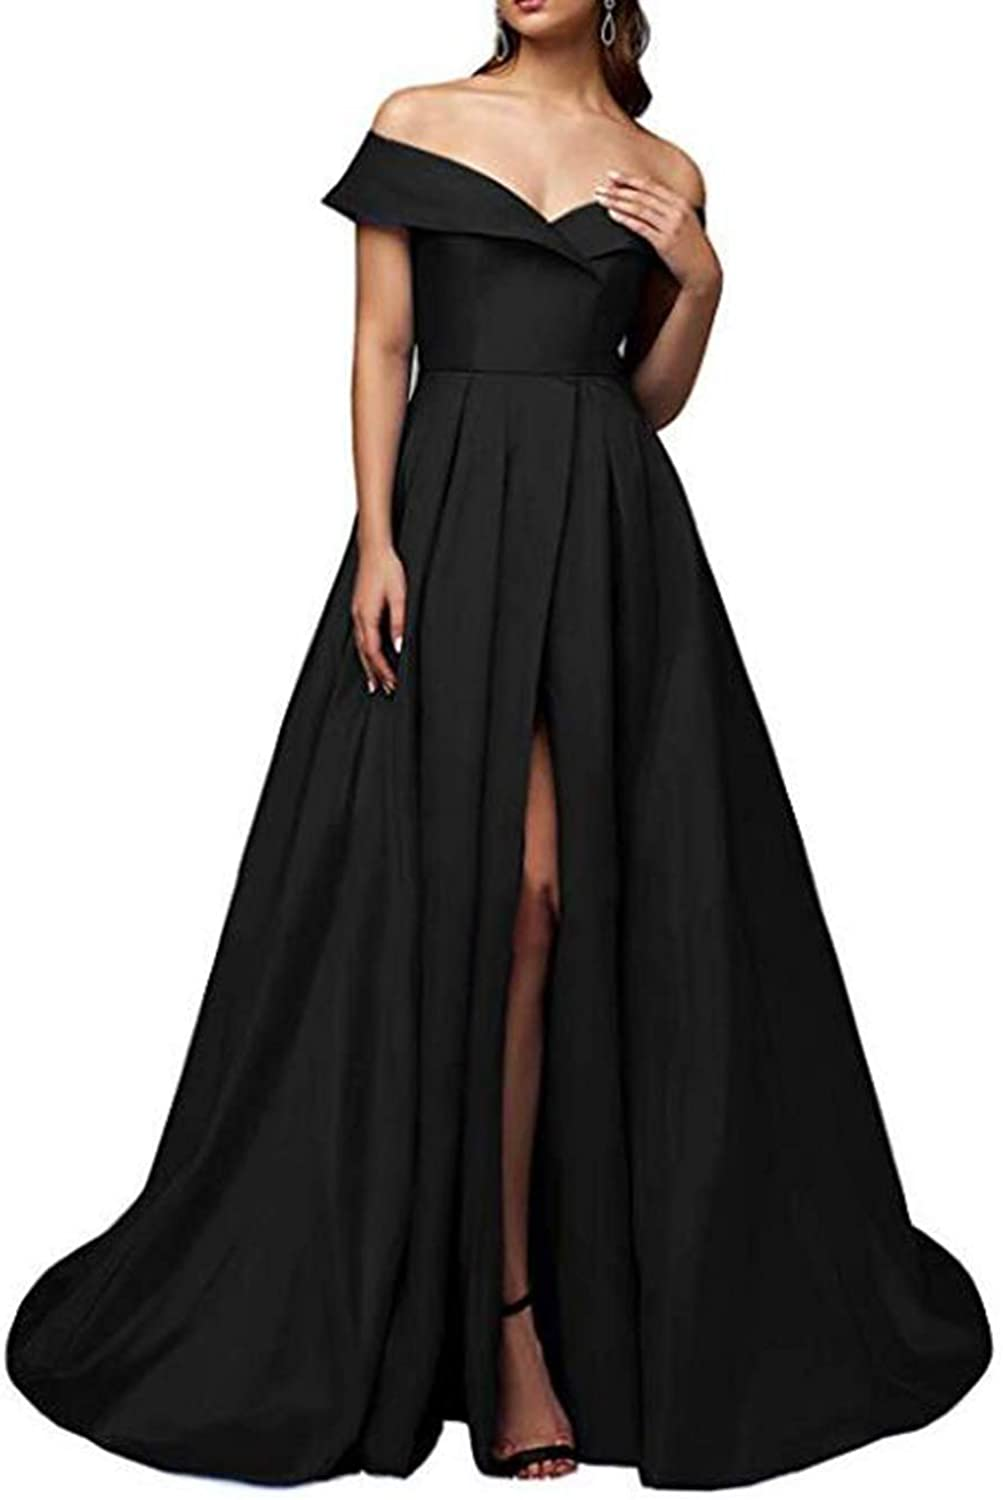 Alilith.Z Sexy High Split Prom Dresses Off Shoulder Long Formal Evening Dresses Party Gowns for Women